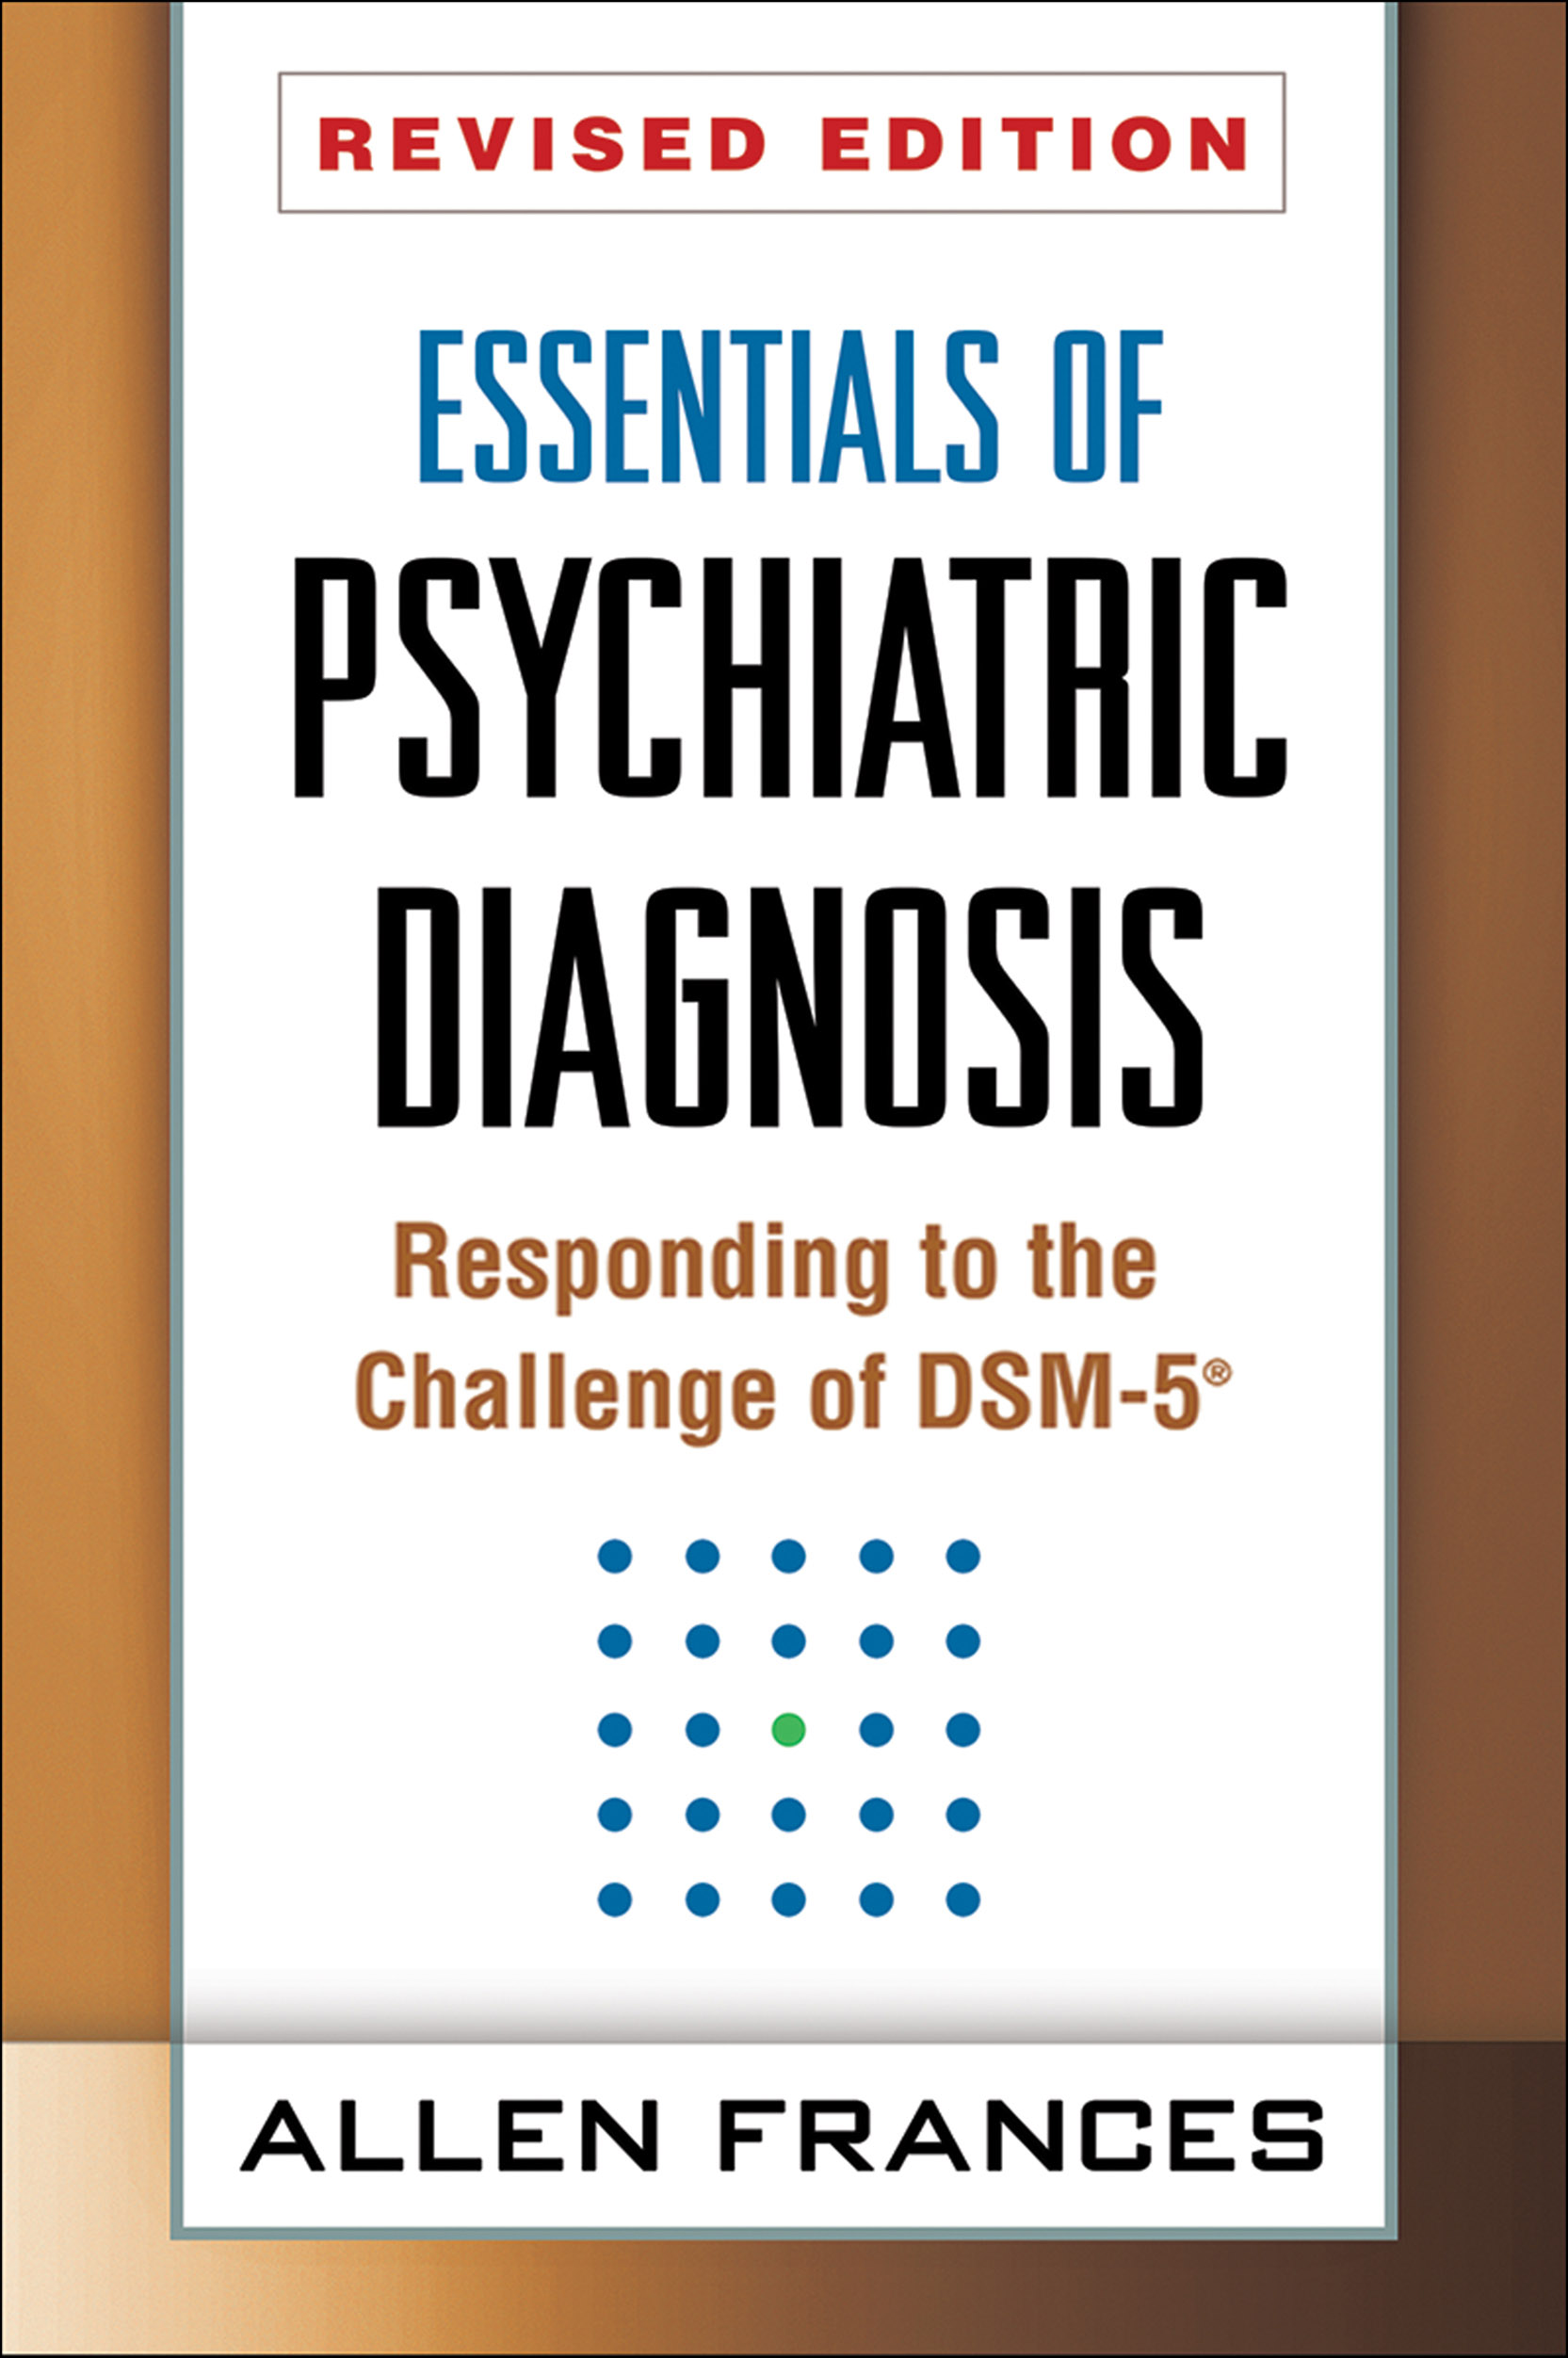 Essentials of psychiatric diagnosis revised edition responding to essentials of psychiatric diagnosis revised edition fandeluxe Gallery